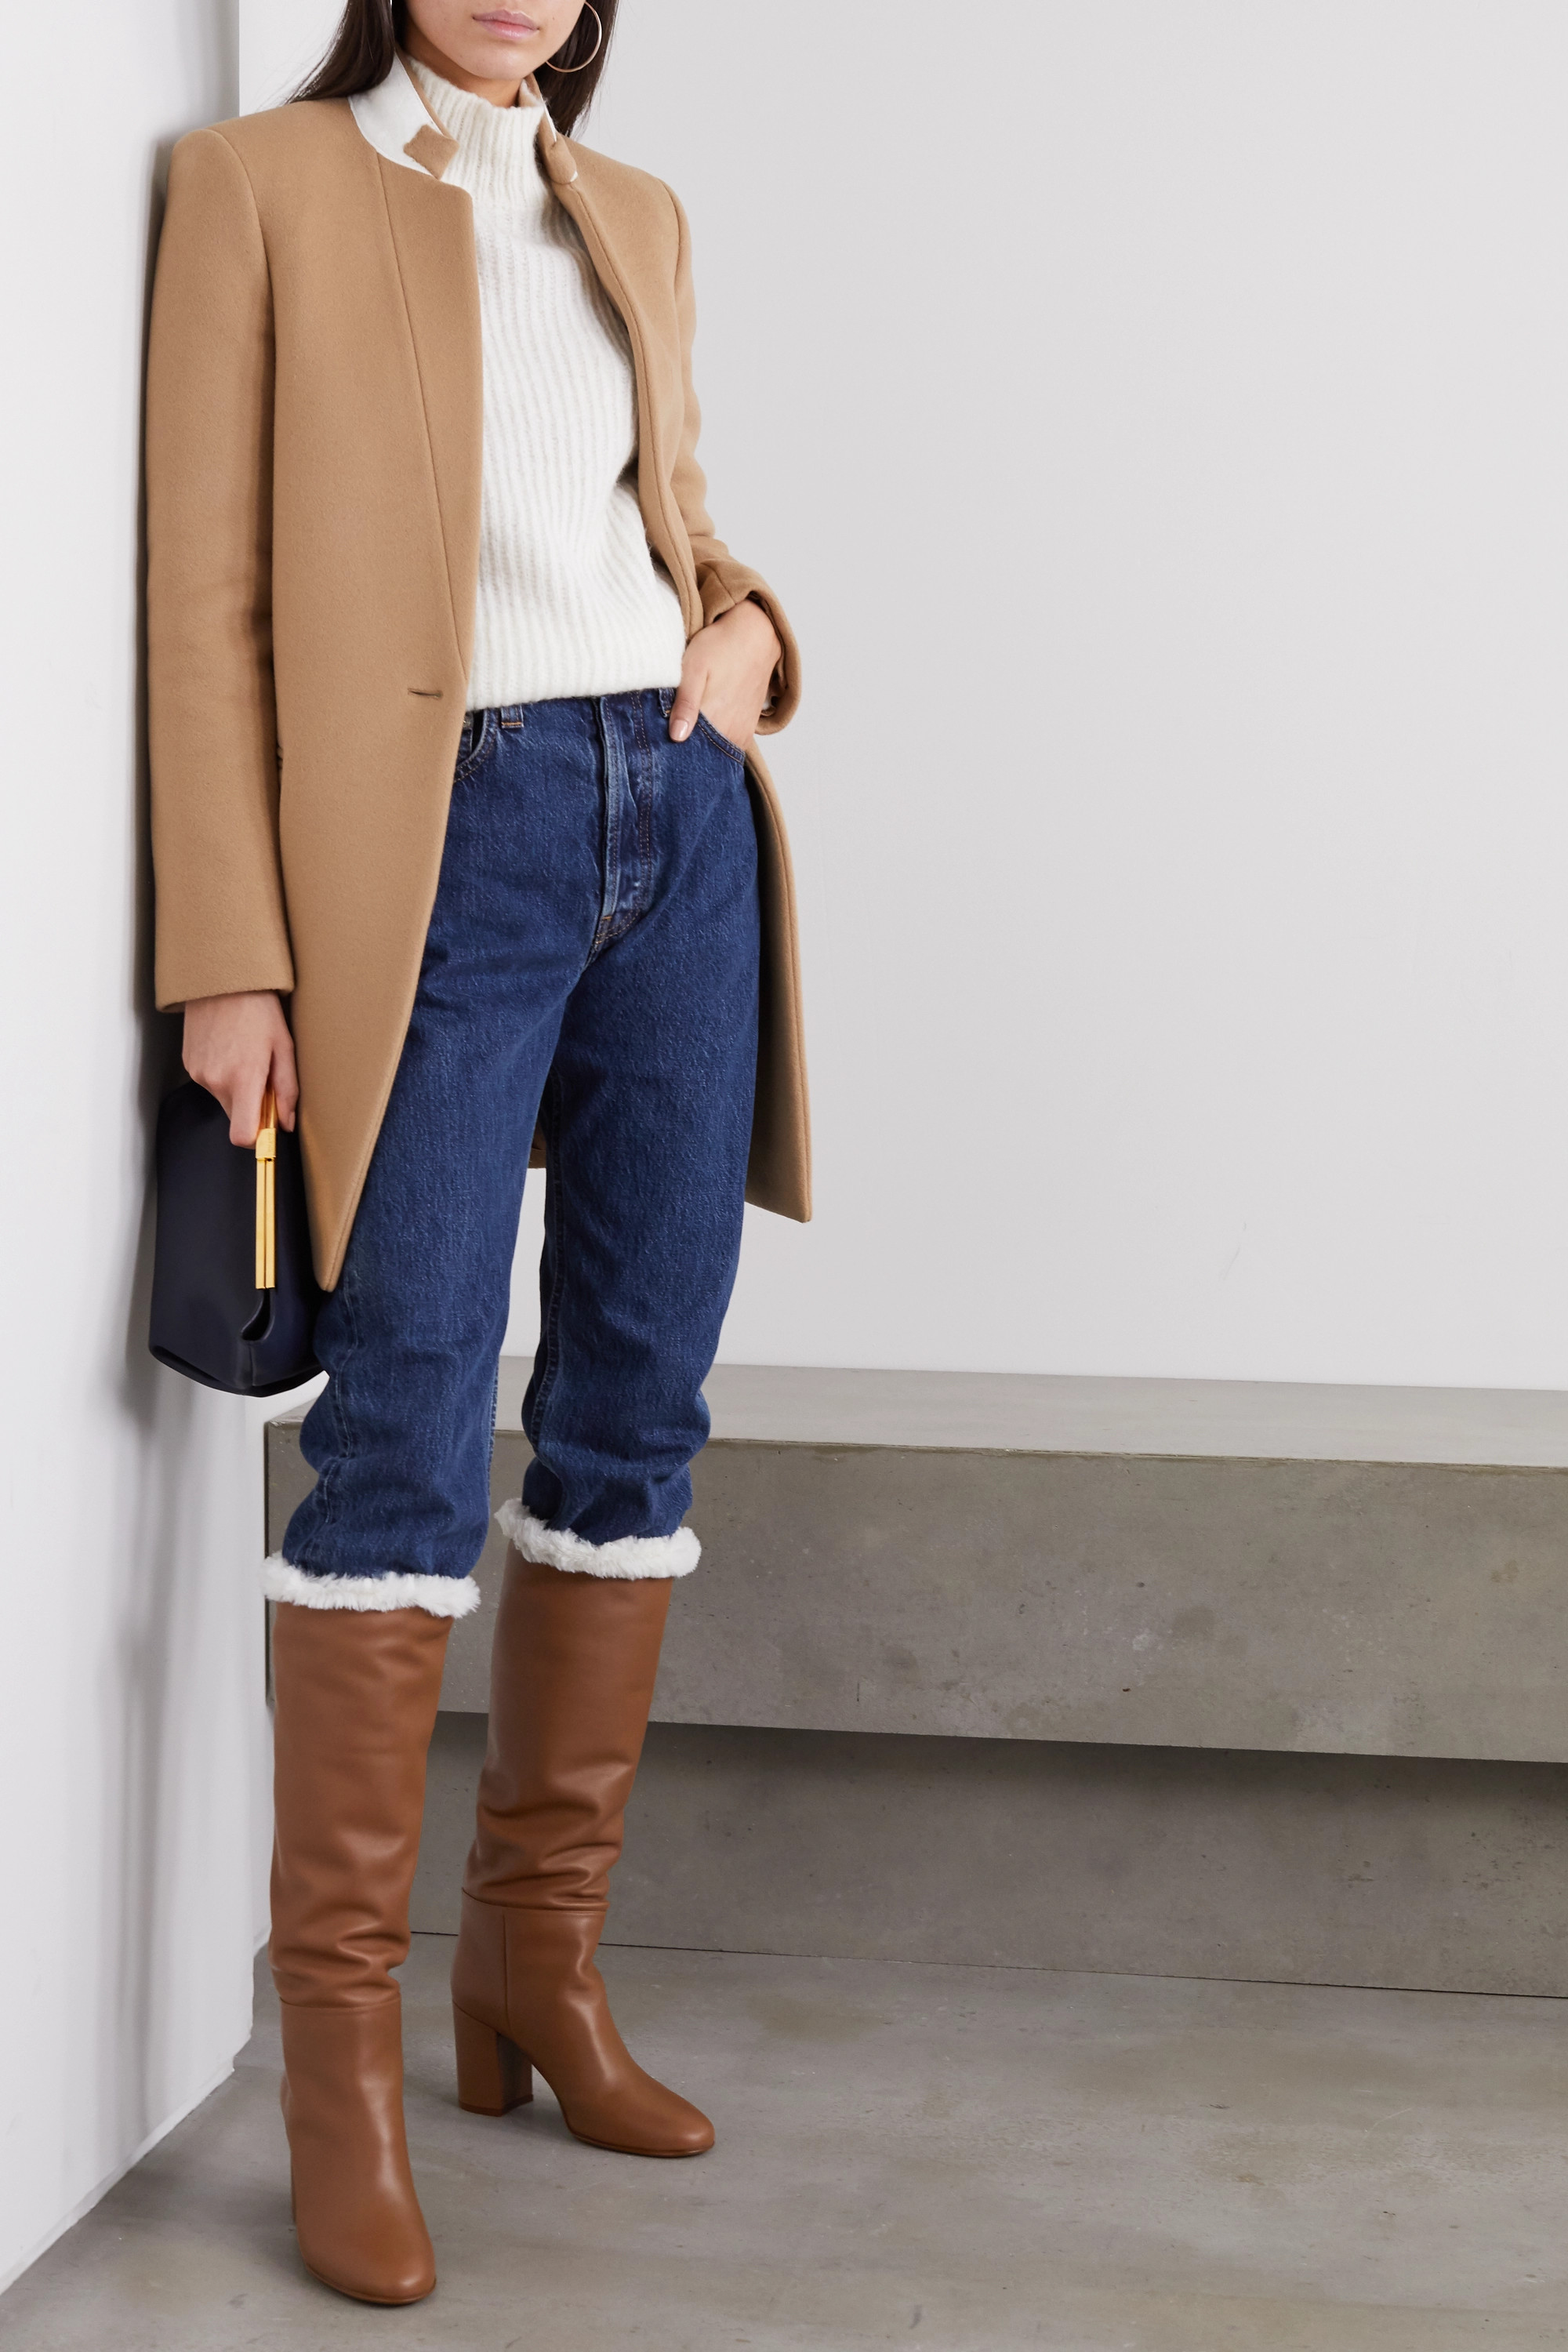 Gianvito Rossi 85 faux shearling-lined leather knee boots